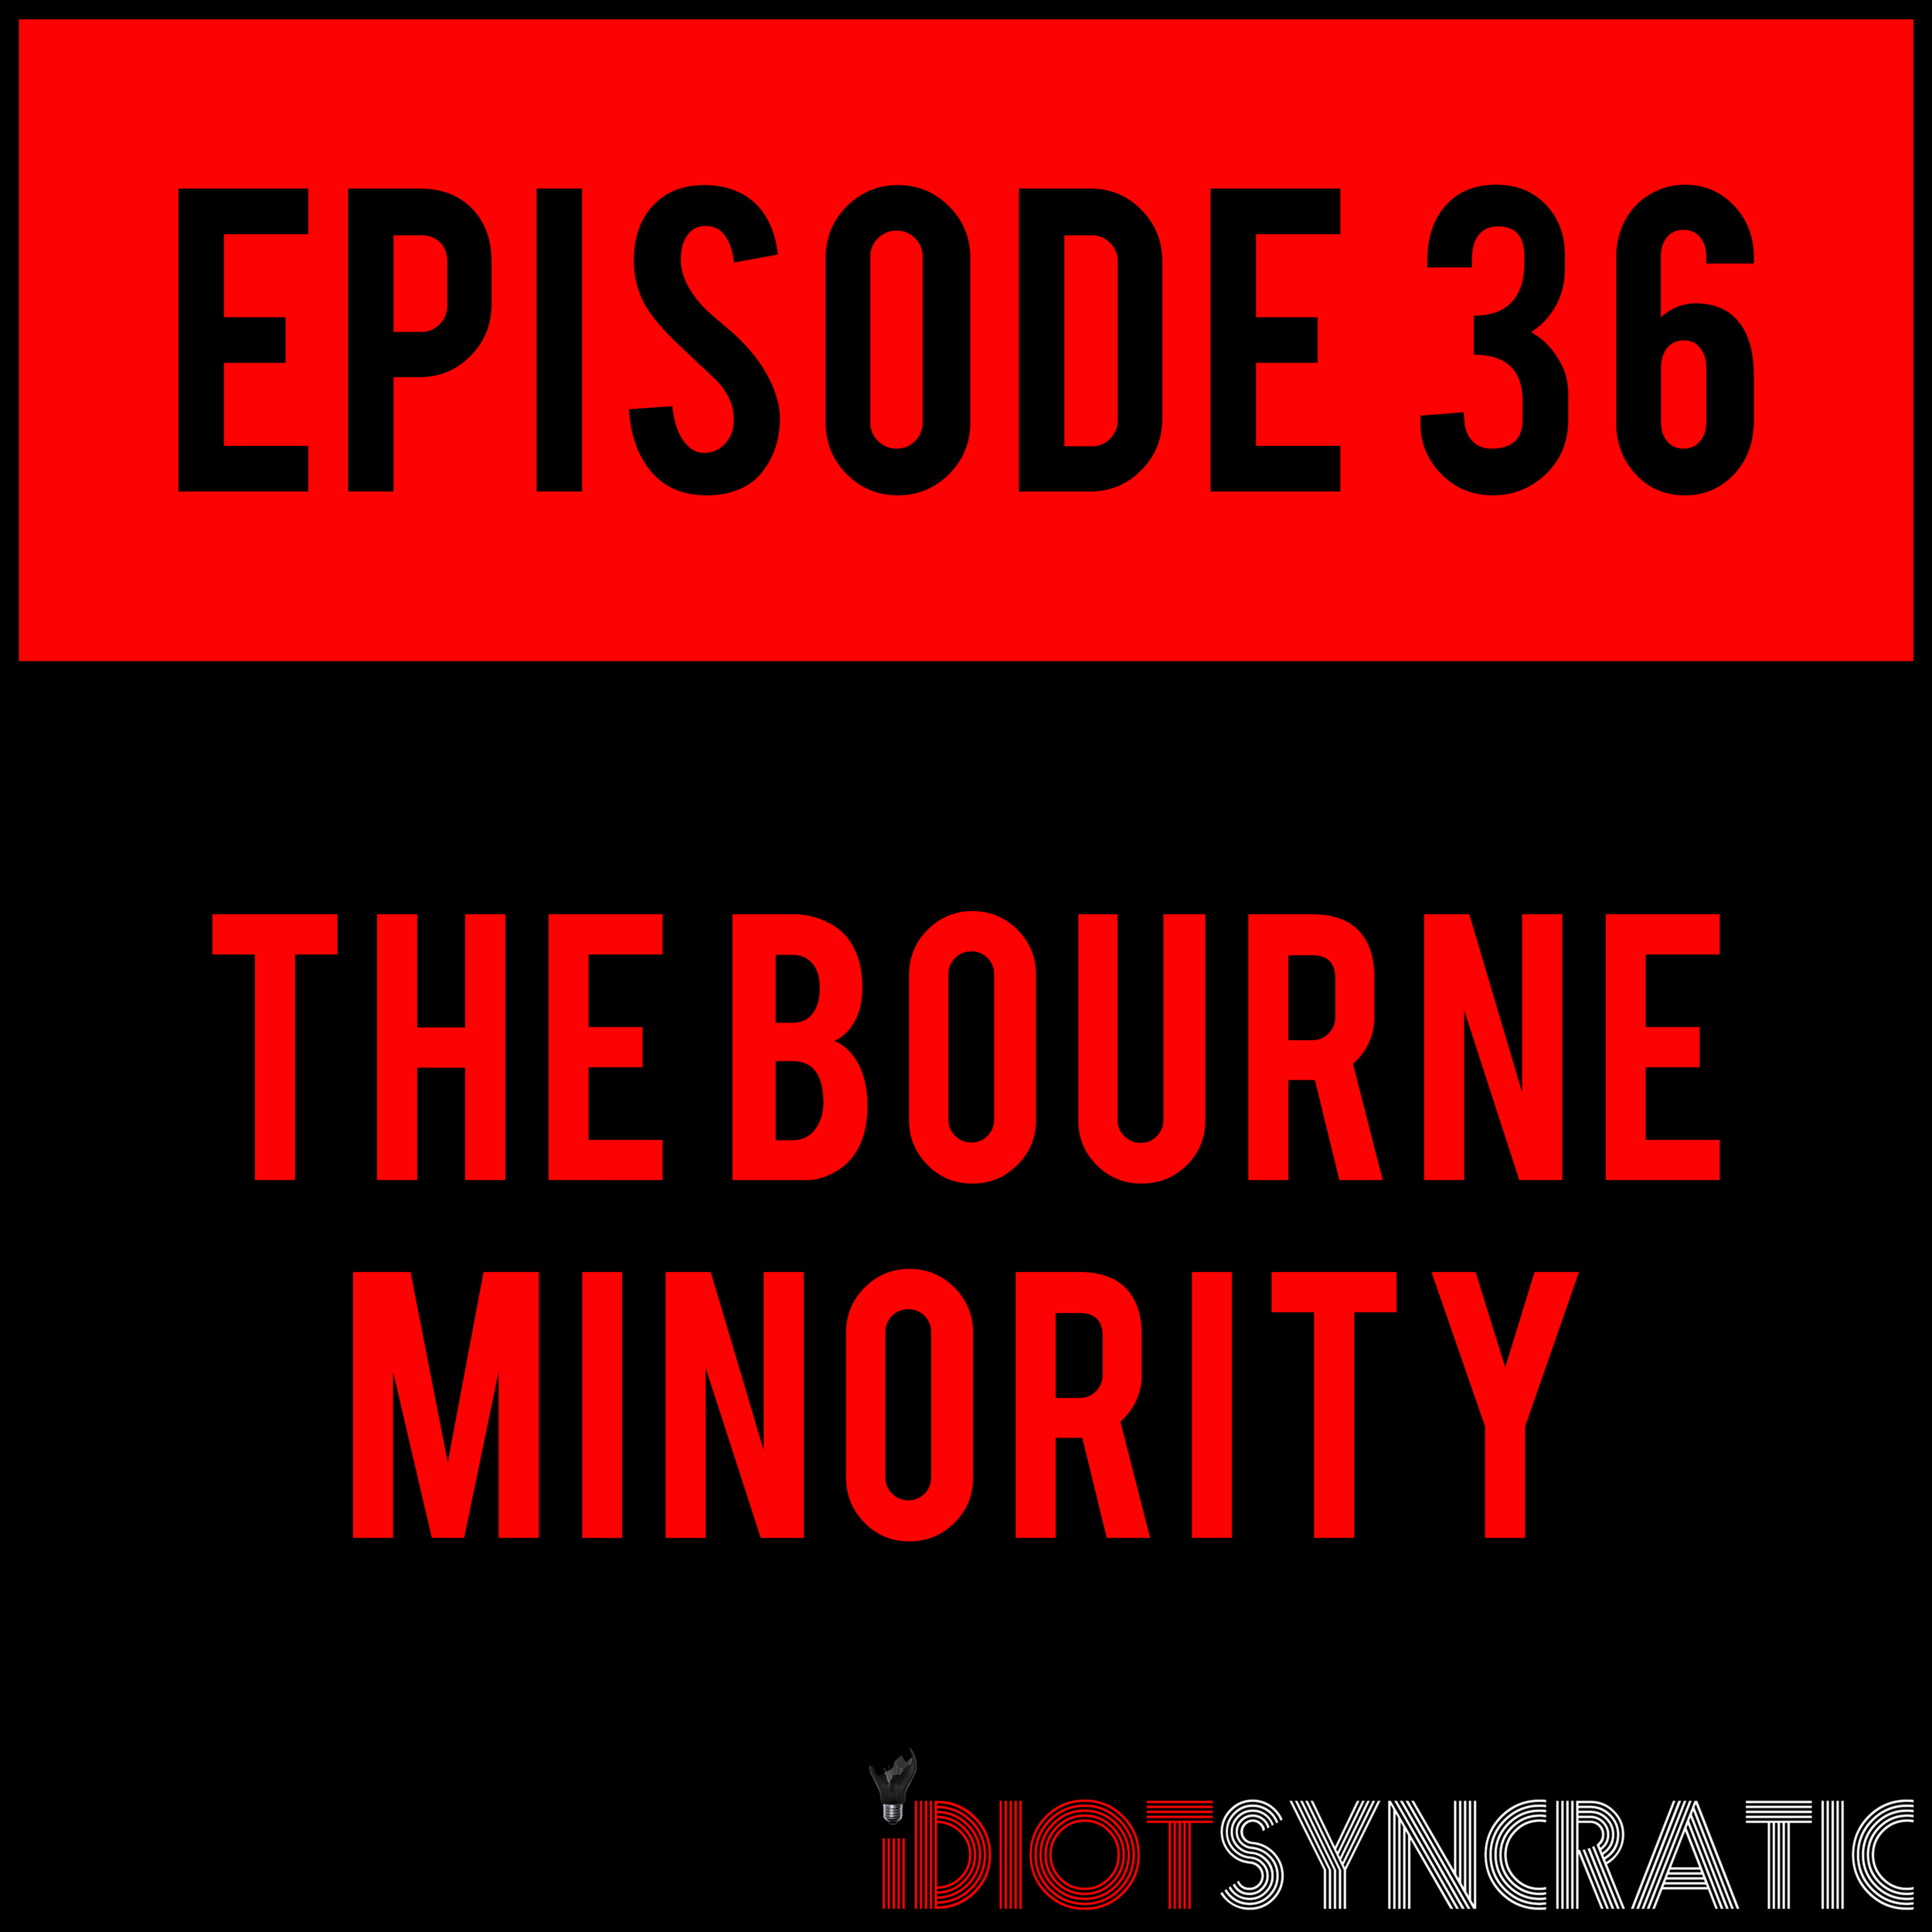 EPISODE 36 - Y'all are tearing this episode up! It's already our most played on release day, ever. But in case you haven't listened yet, THE BOURNE MINORITY - EPISODE 36 withMilkman Dannyis out everywhere (except mf Spotify).